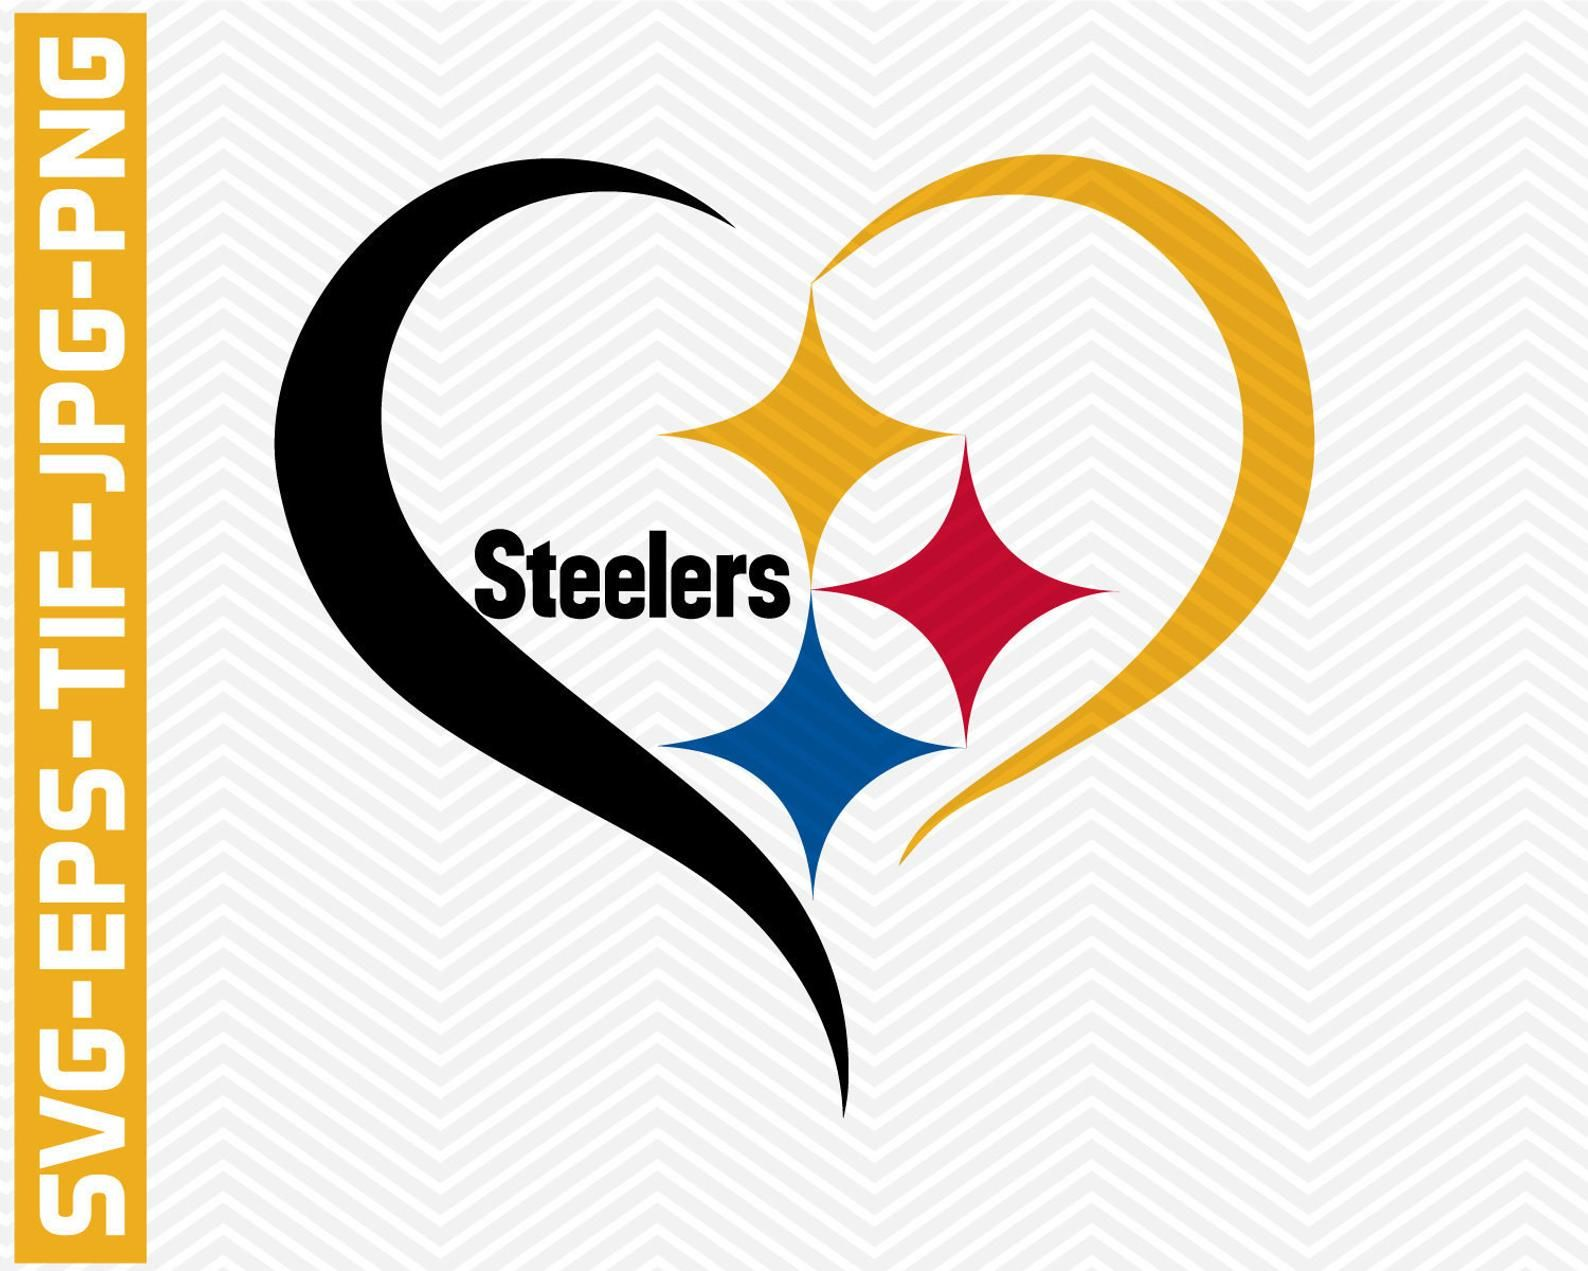 Pittsburgh Steelers svg,eps,tif,pdf,png,vector files,NFL svg.